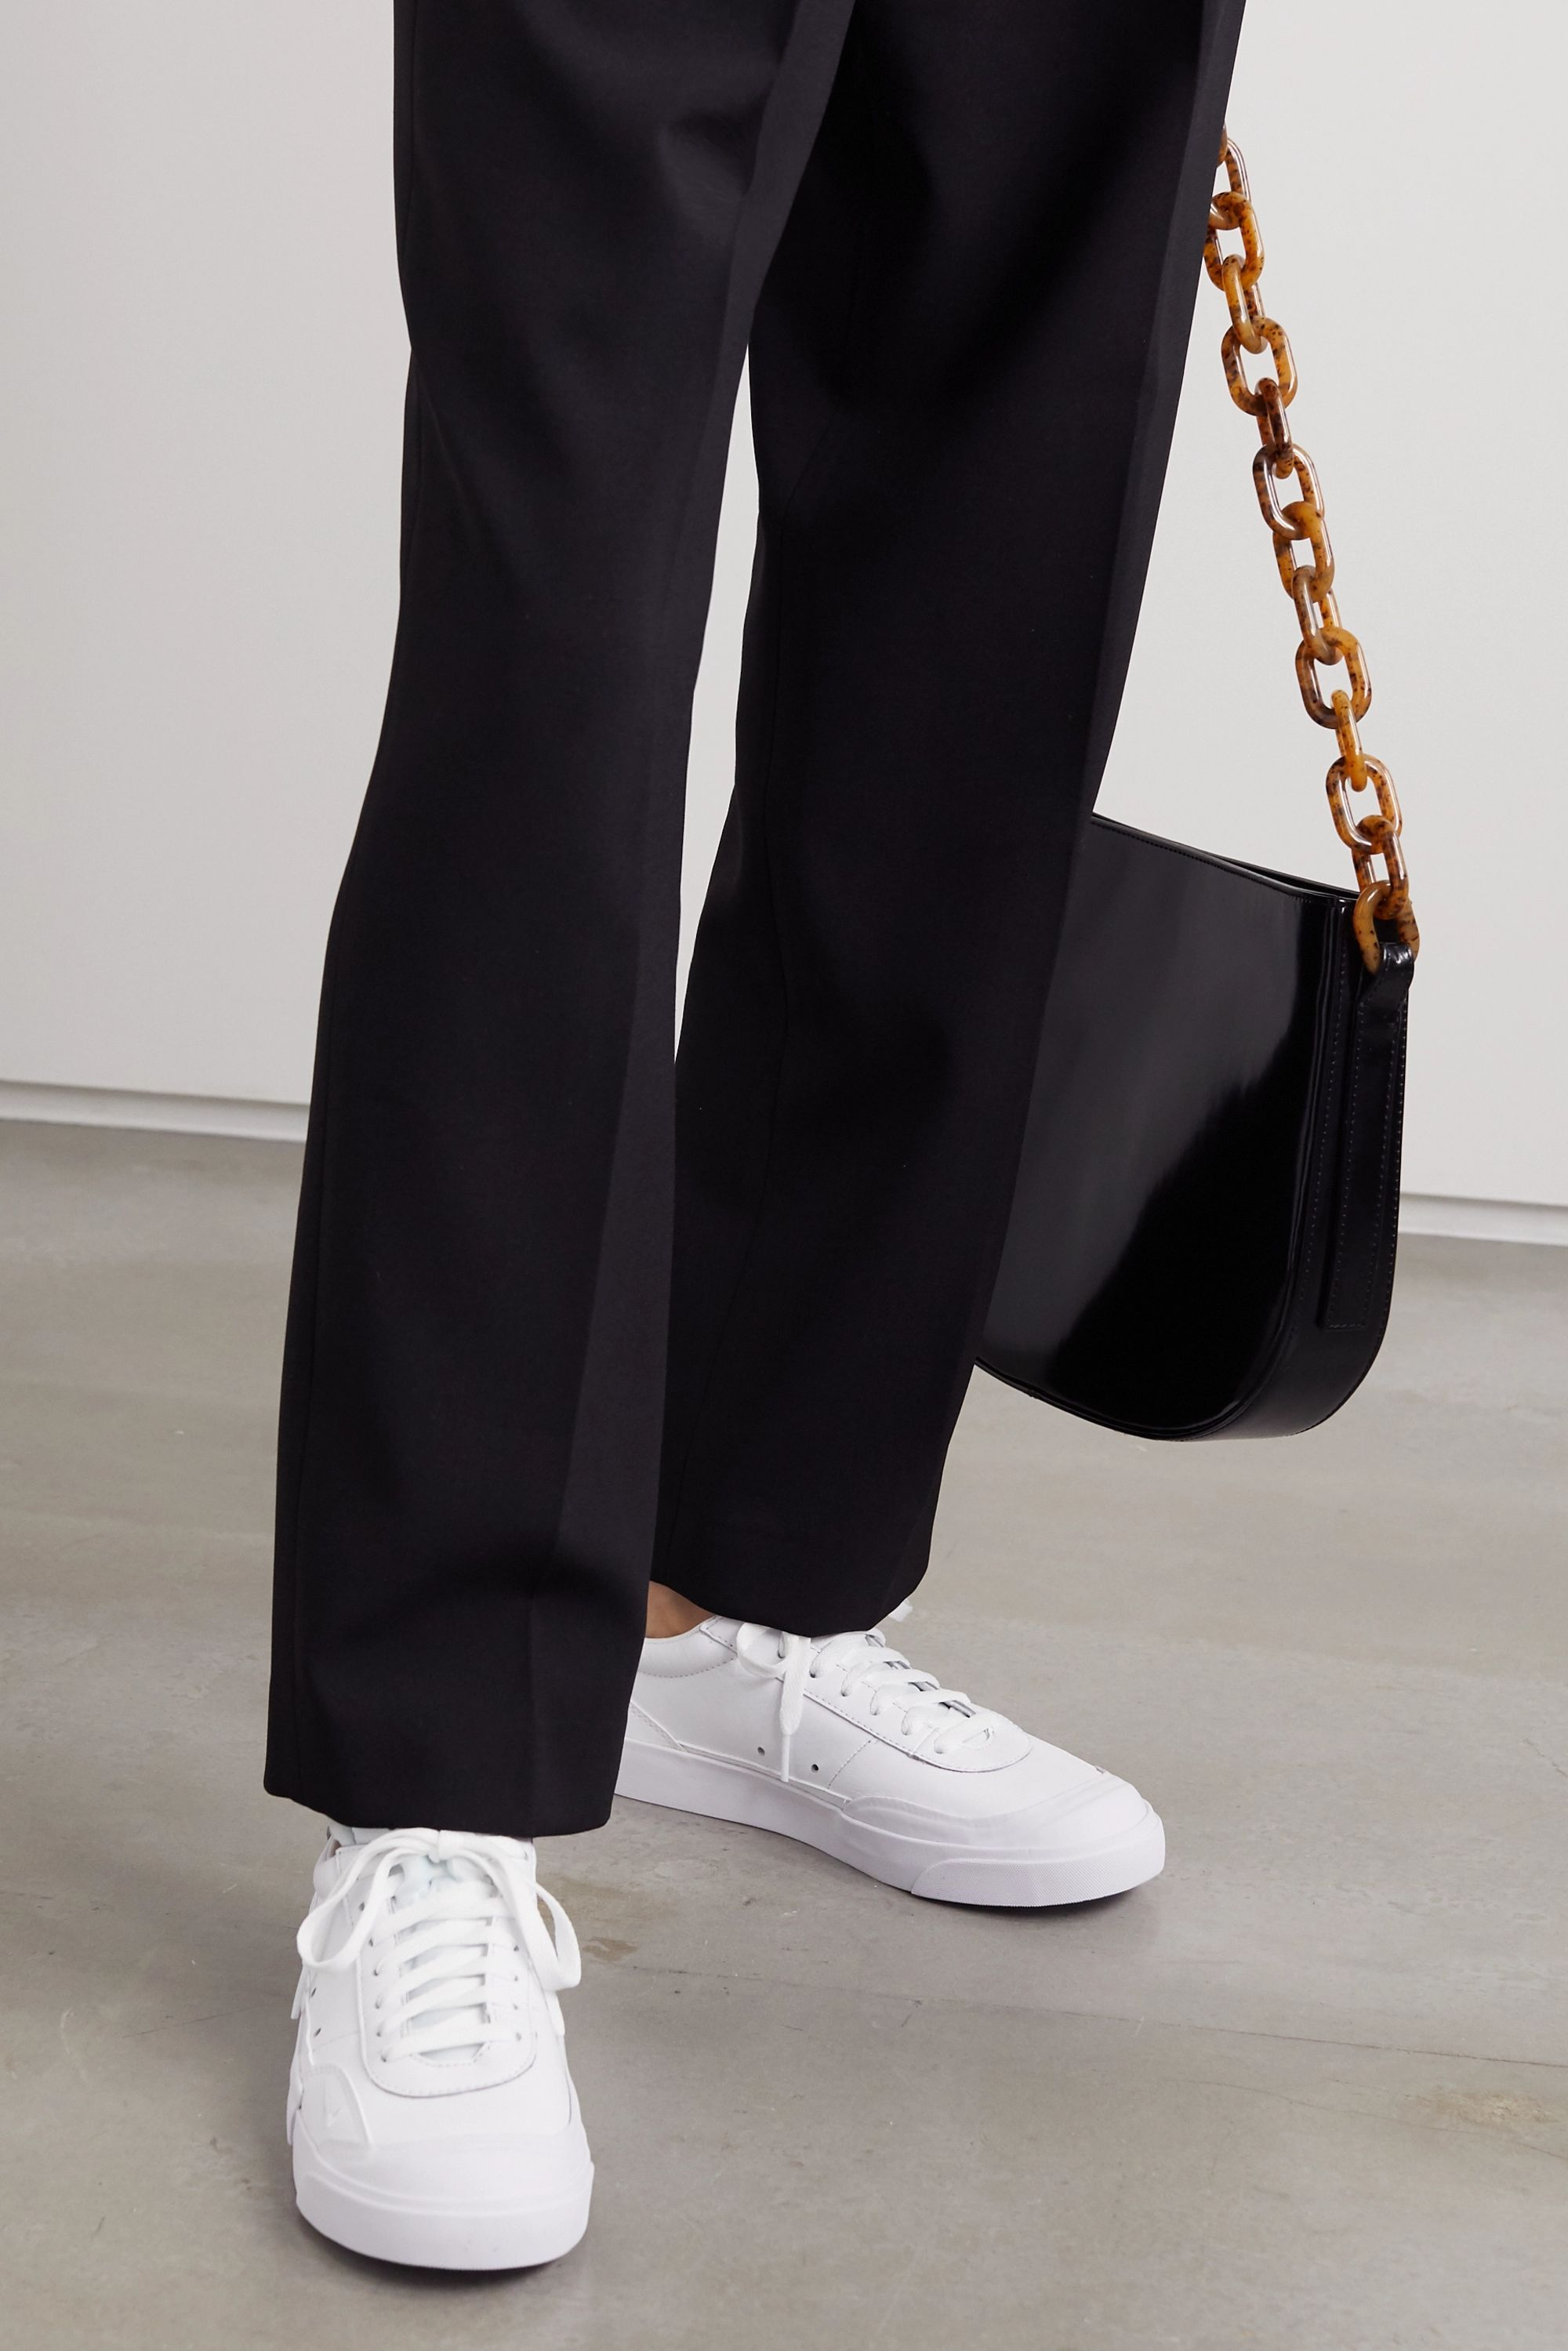 rubber-trimmed leather sneakers | Nike